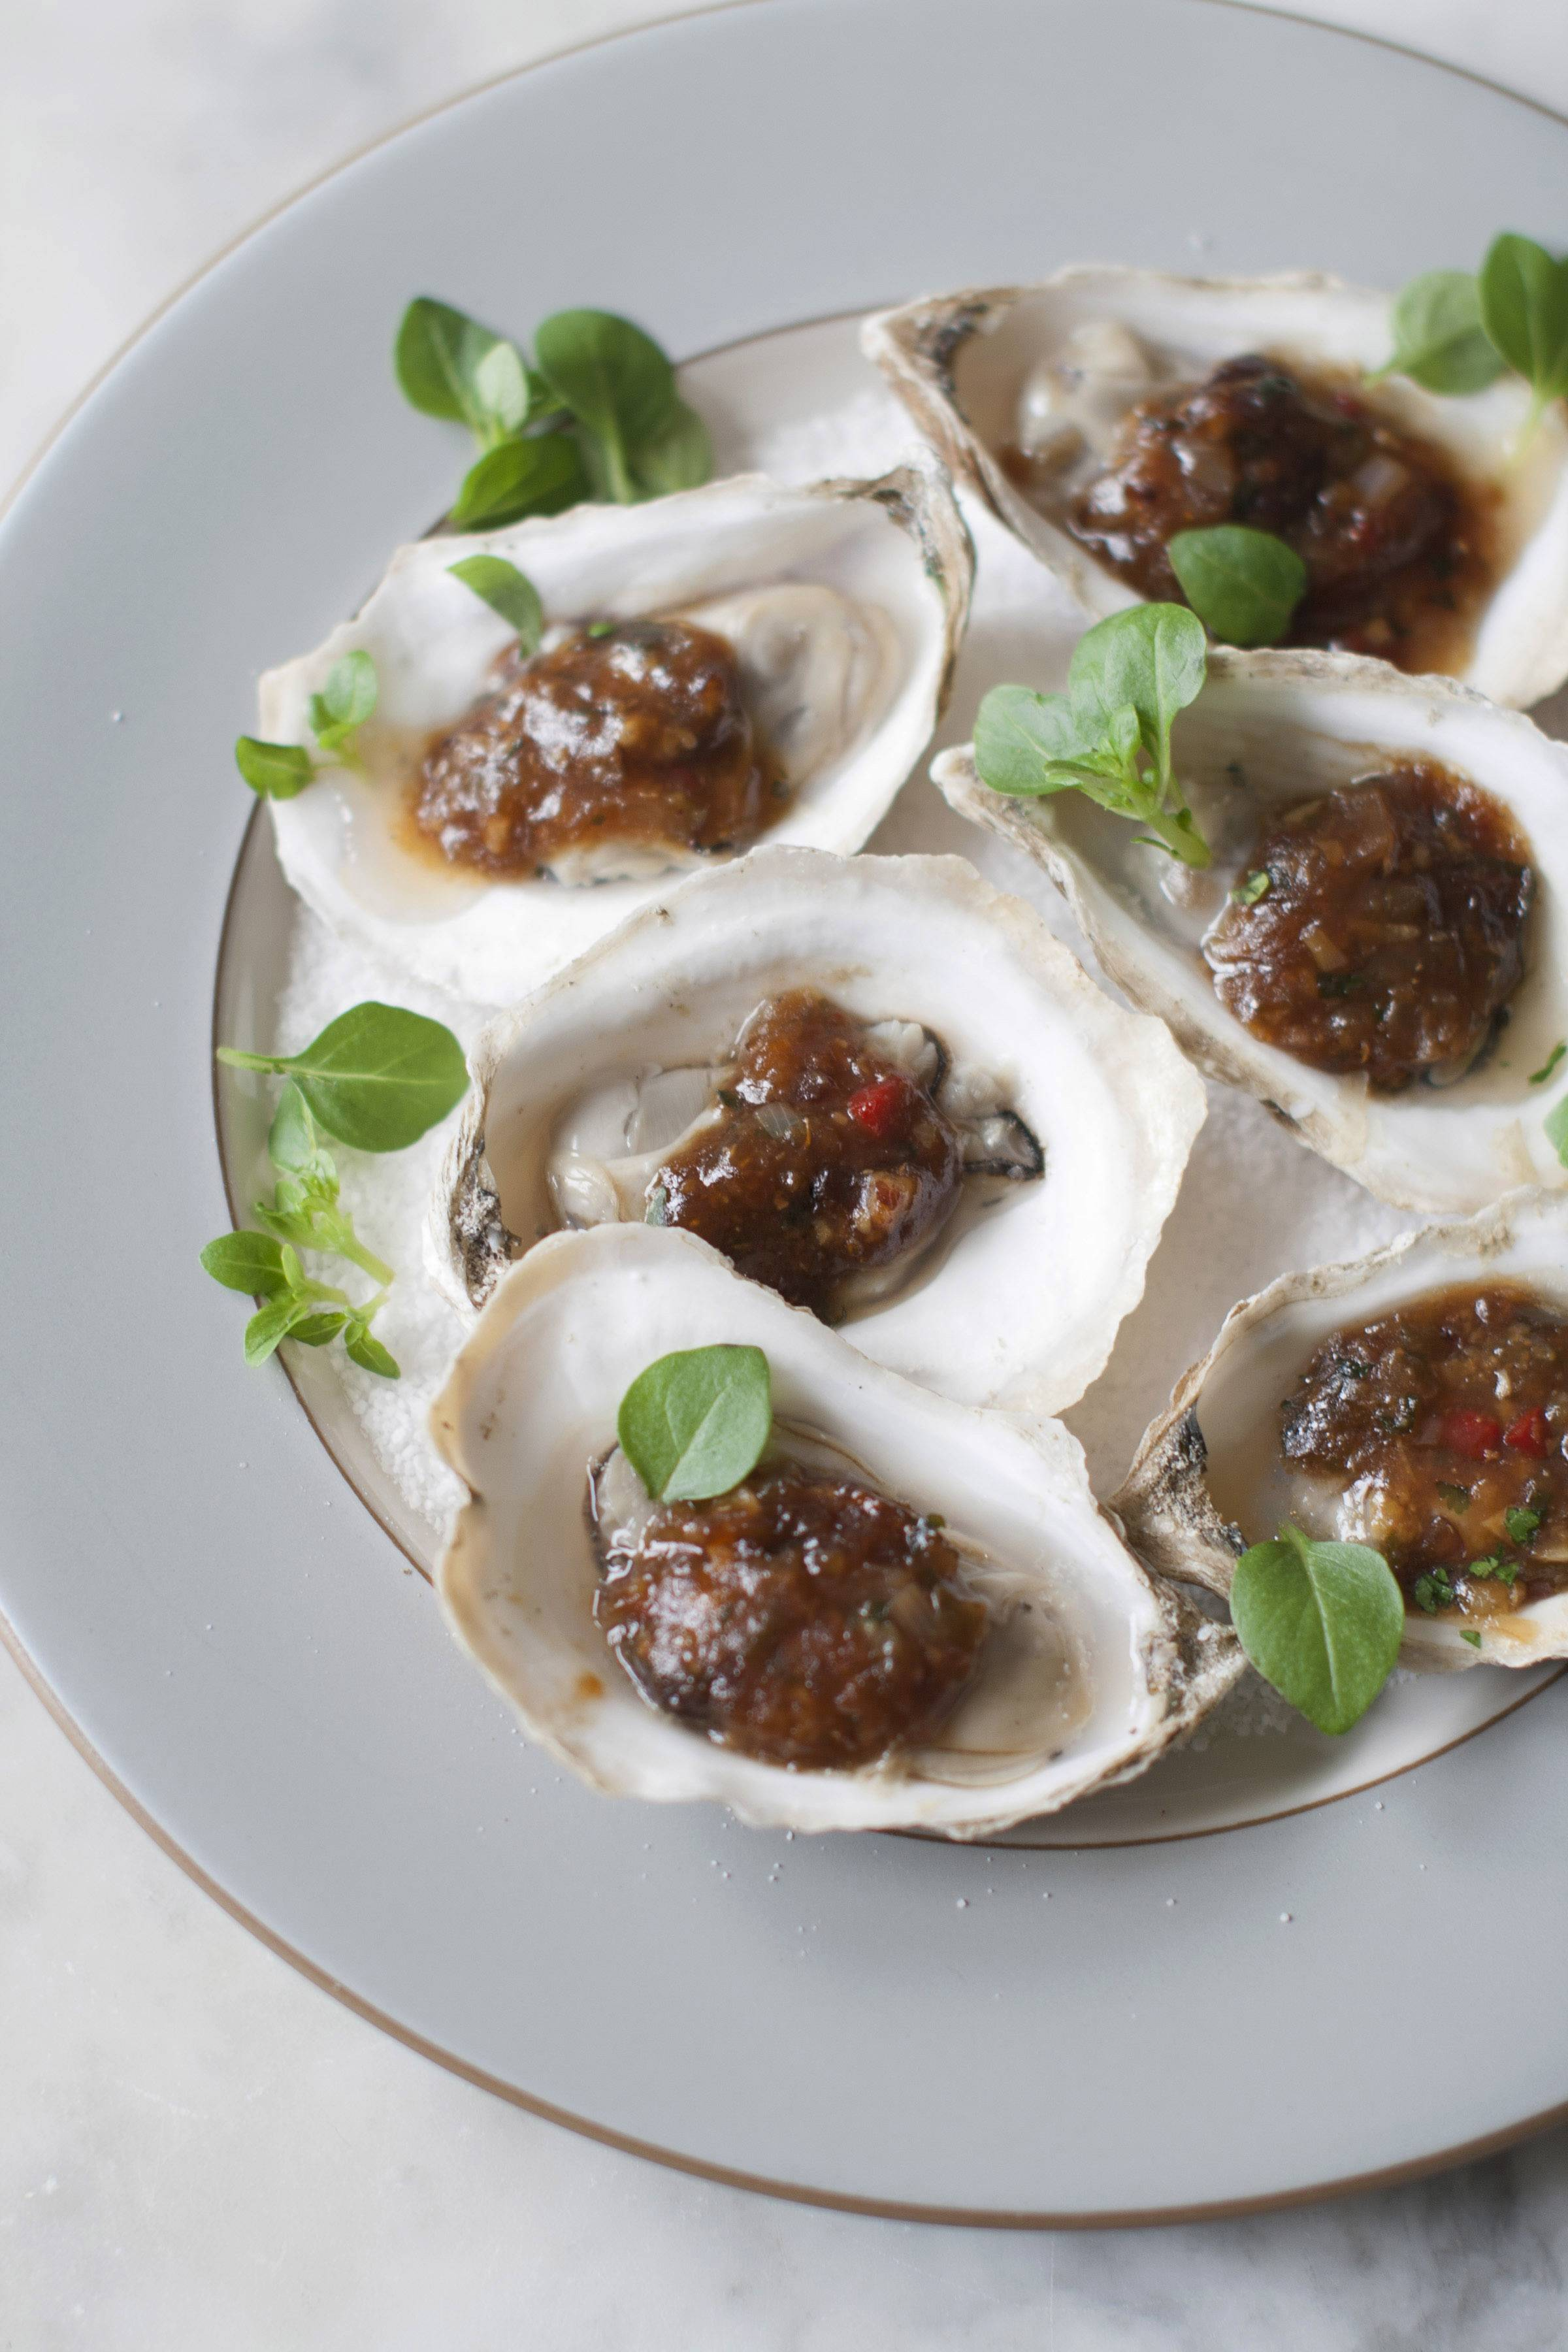 Turn a raw-bar treat until a summertime favorite with a recipe for grilled oysters with fermented black beans and chili garlic inspired by chefs at the South Beach Wine and Food Festival in Miami Beach, Fla.